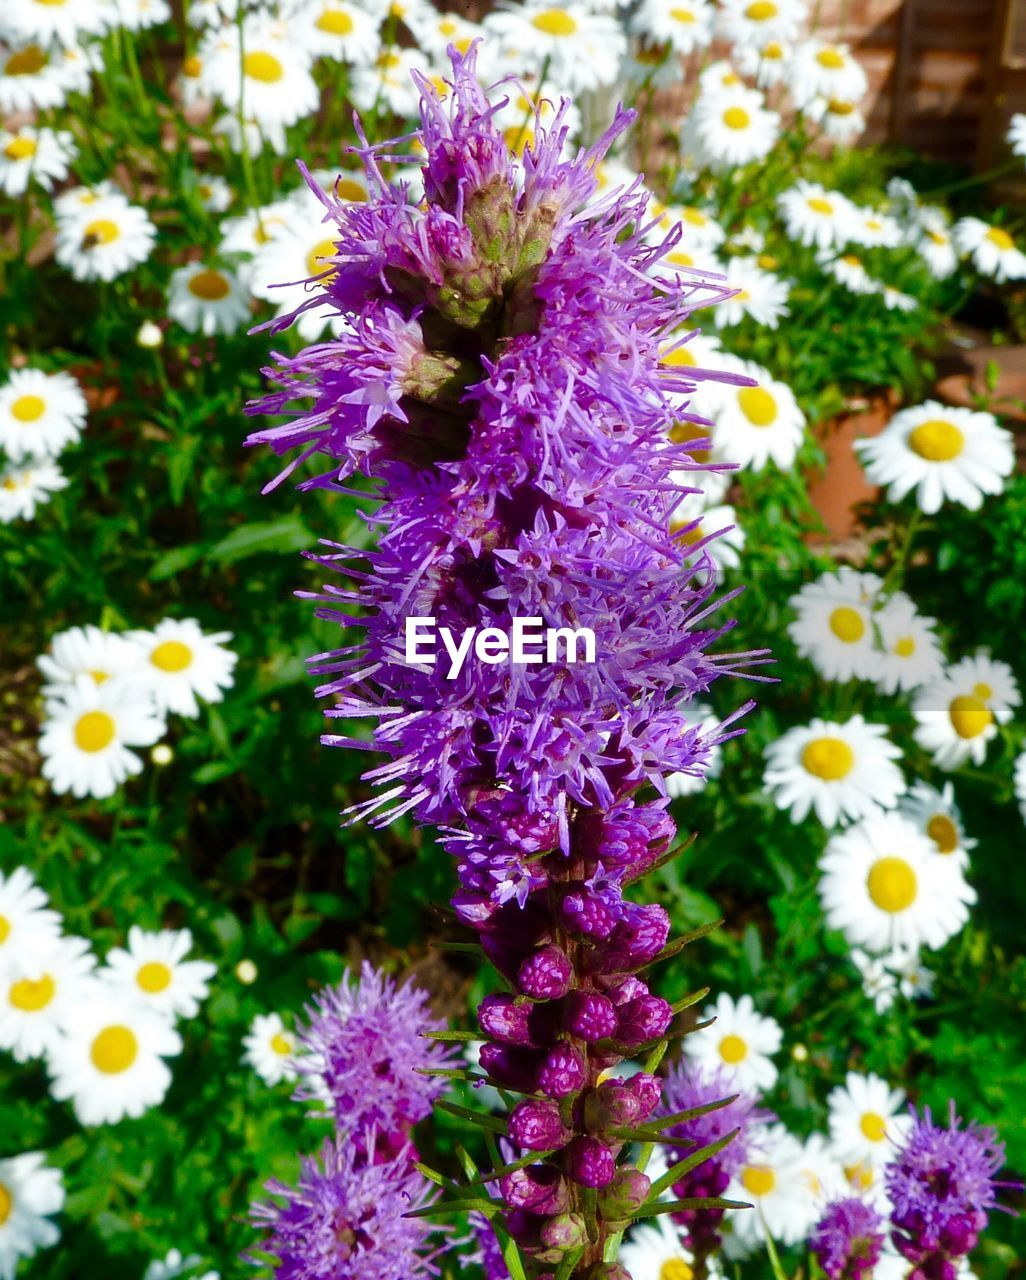 flower, purple, growth, nature, beauty in nature, no people, fragility, freshness, day, petal, plant, outdoors, close-up, blooming, flower head